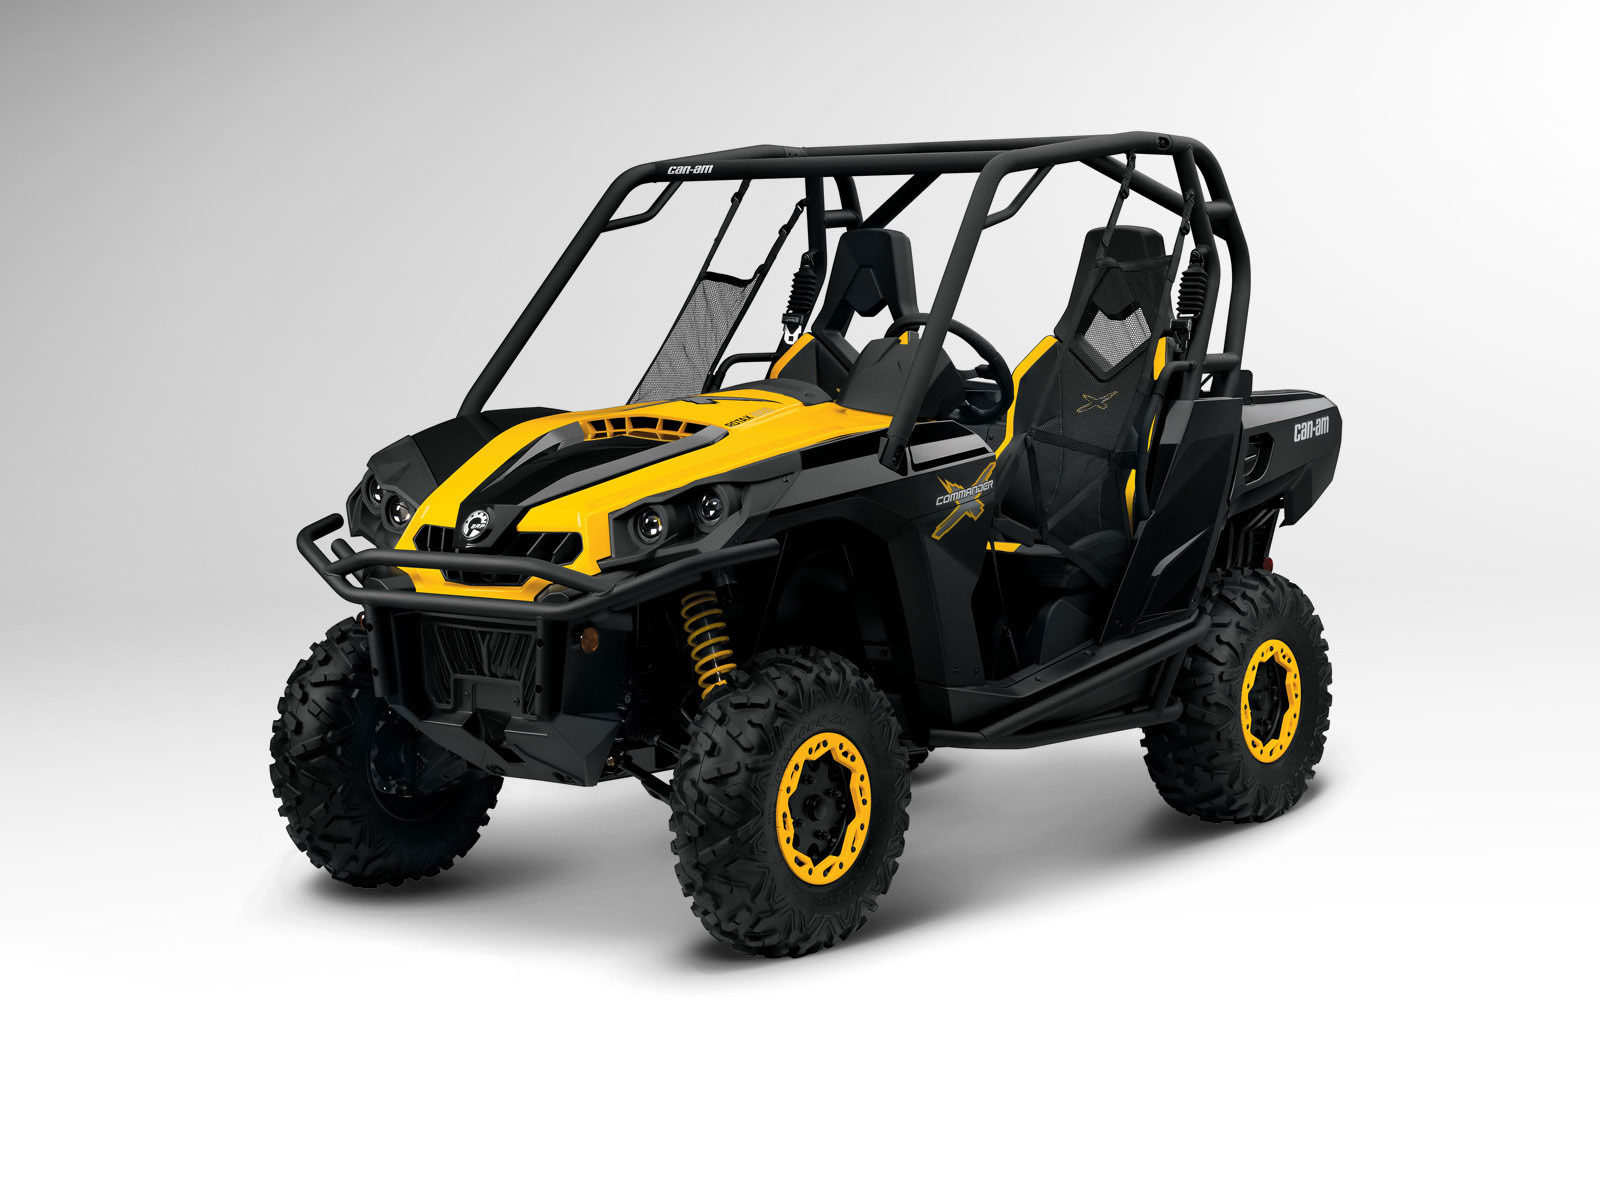 2012 Can-Am Commander 1000X ATV pictures 4